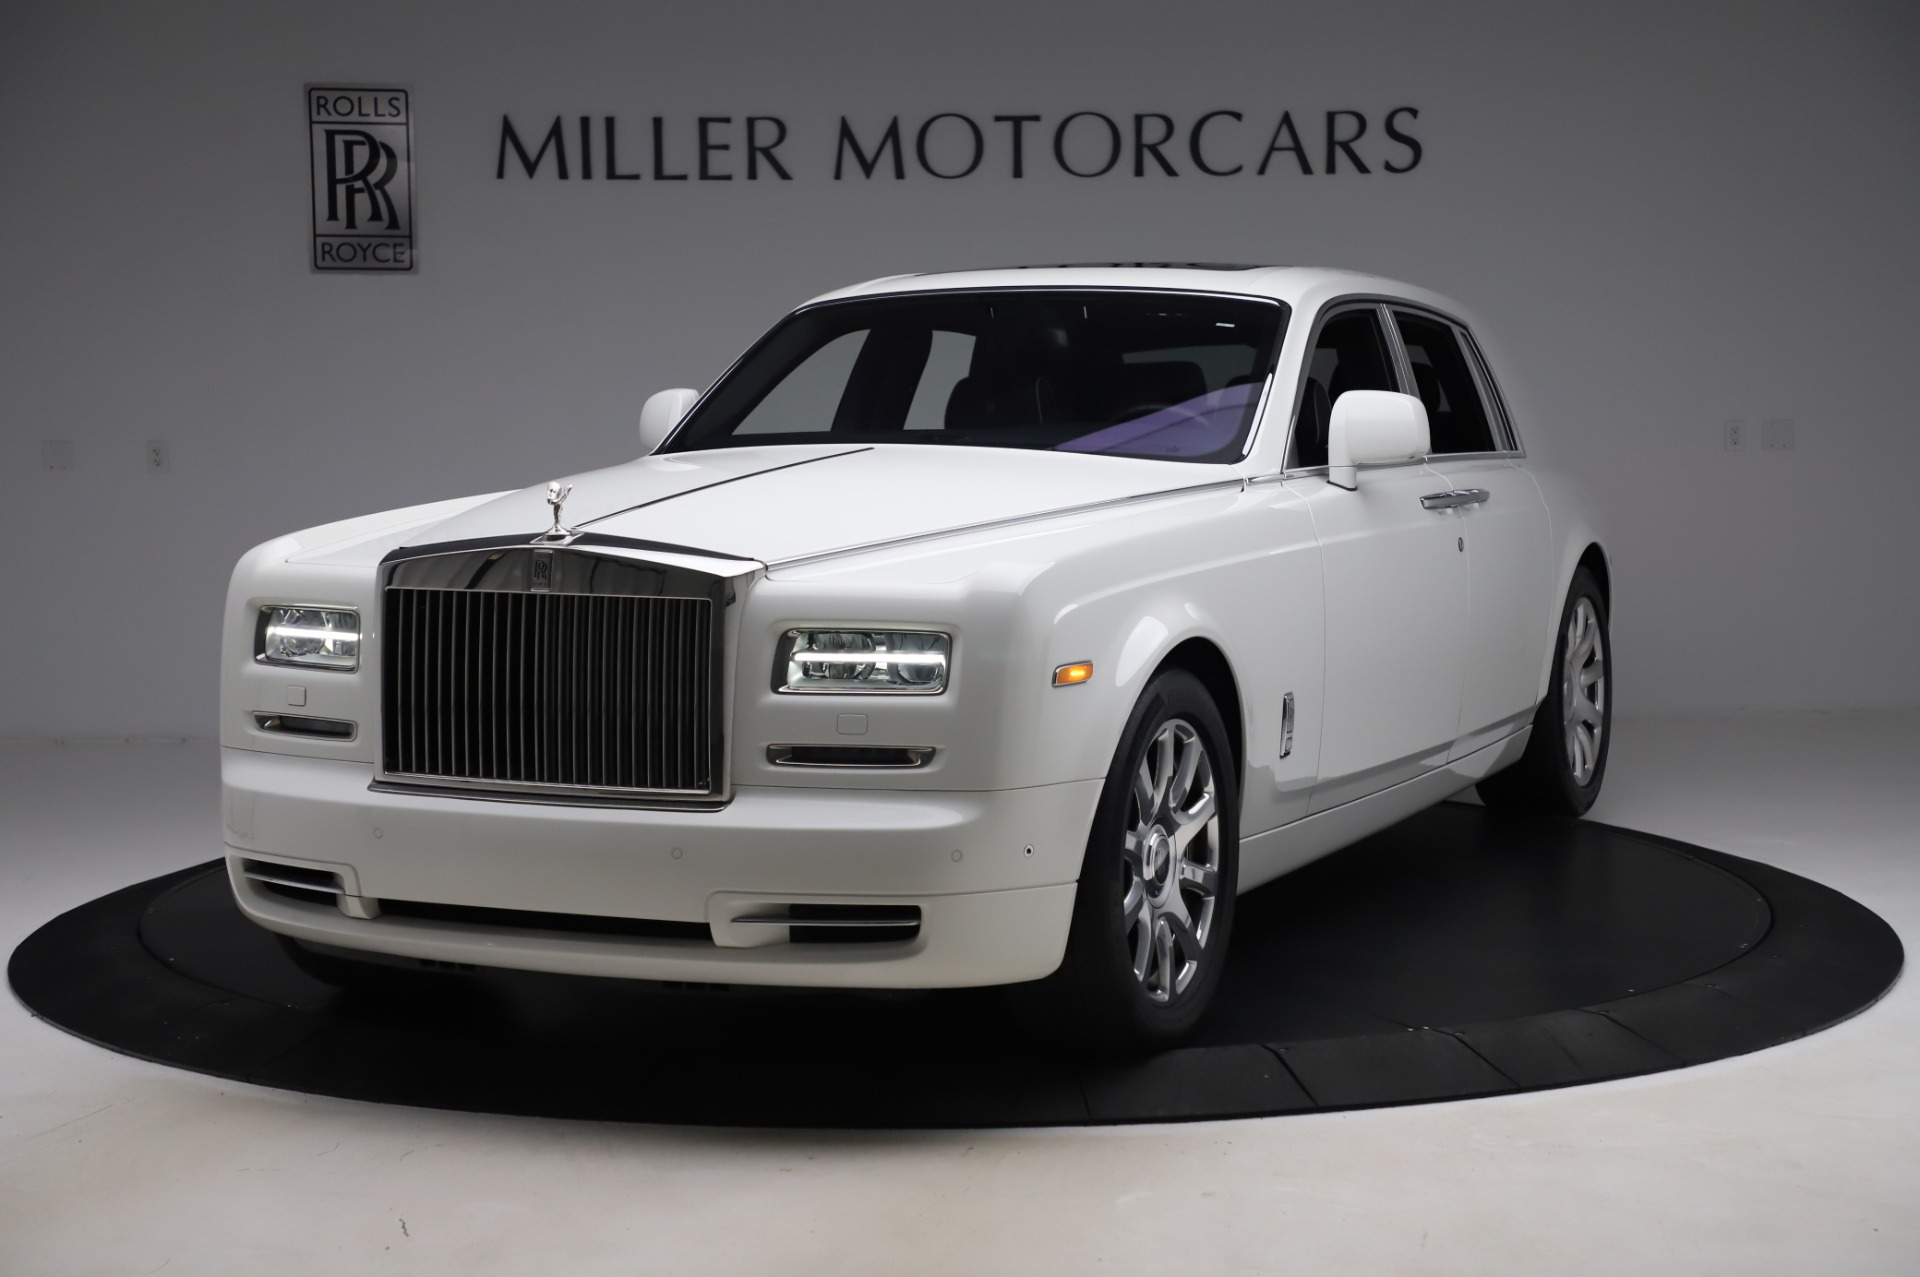 Used 2014 Rolls-Royce Phantom for sale $199,900 at Rolls-Royce Motor Cars Greenwich in Greenwich CT 06830 1